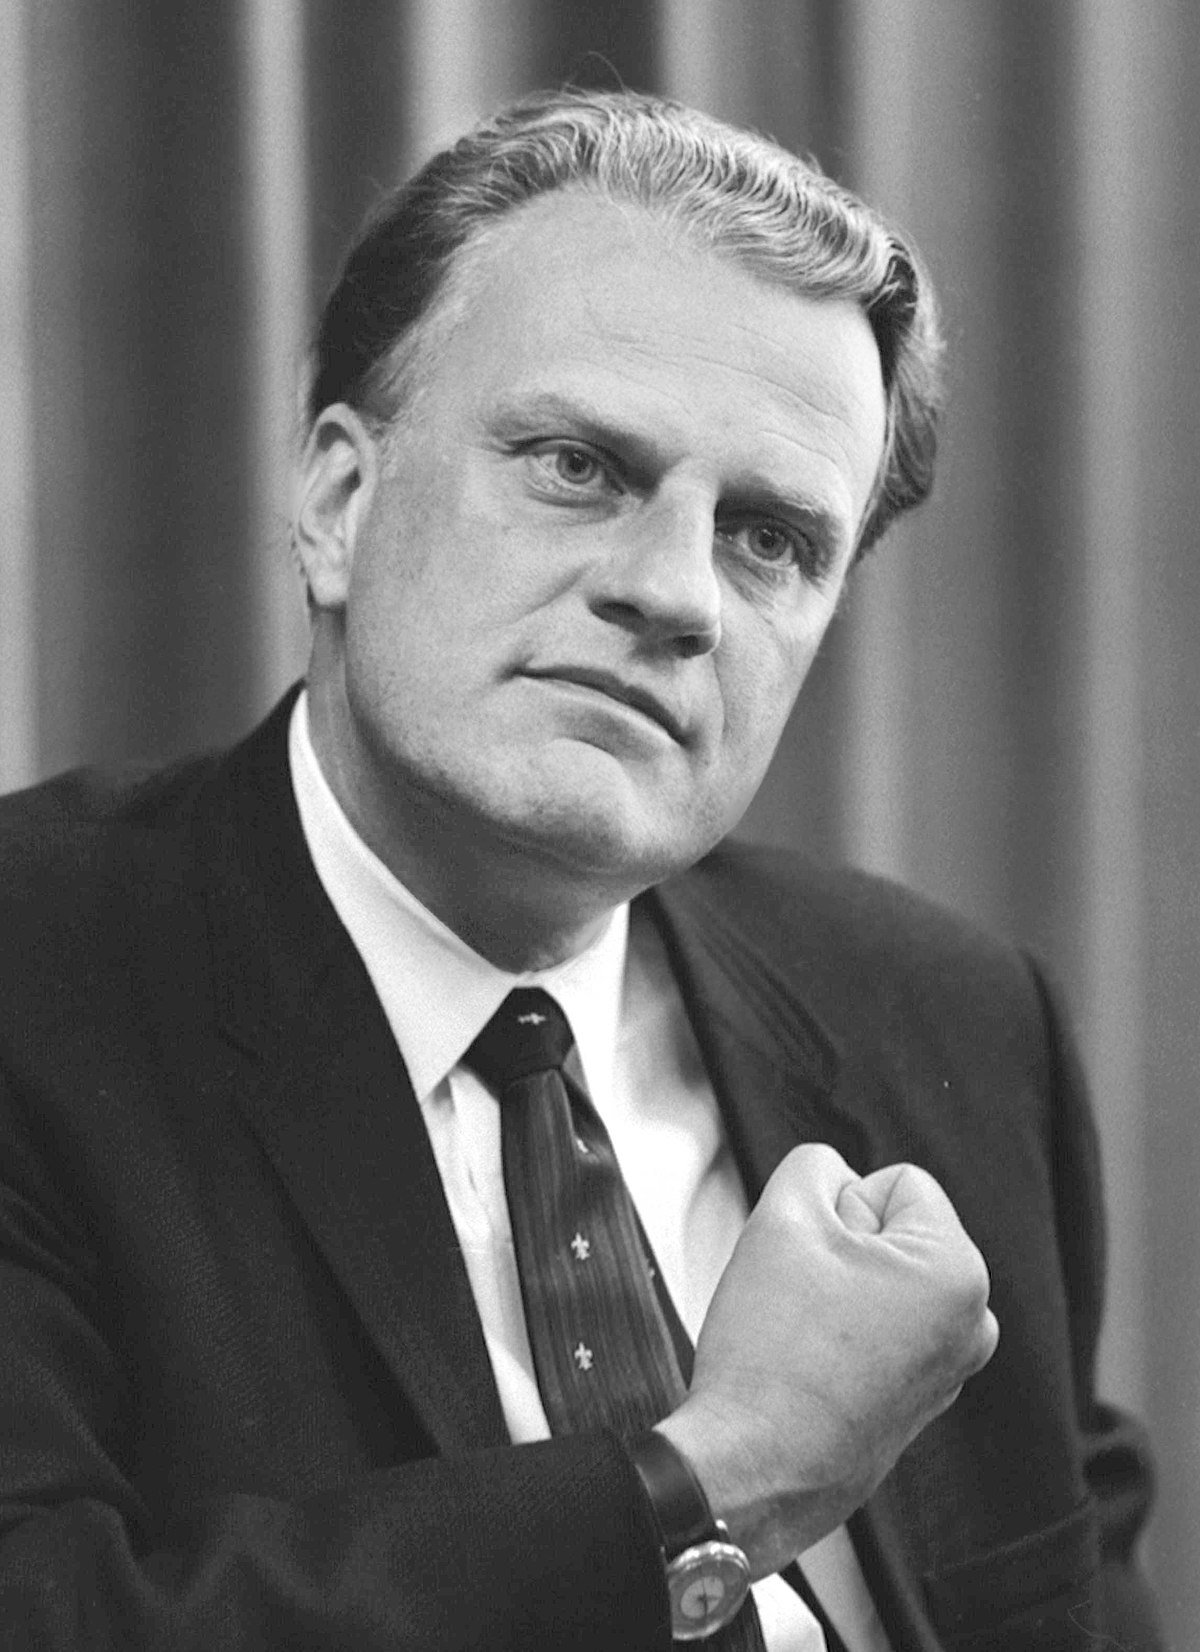 1200px-Billy_Graham_bw_photo,_April_11,_1966